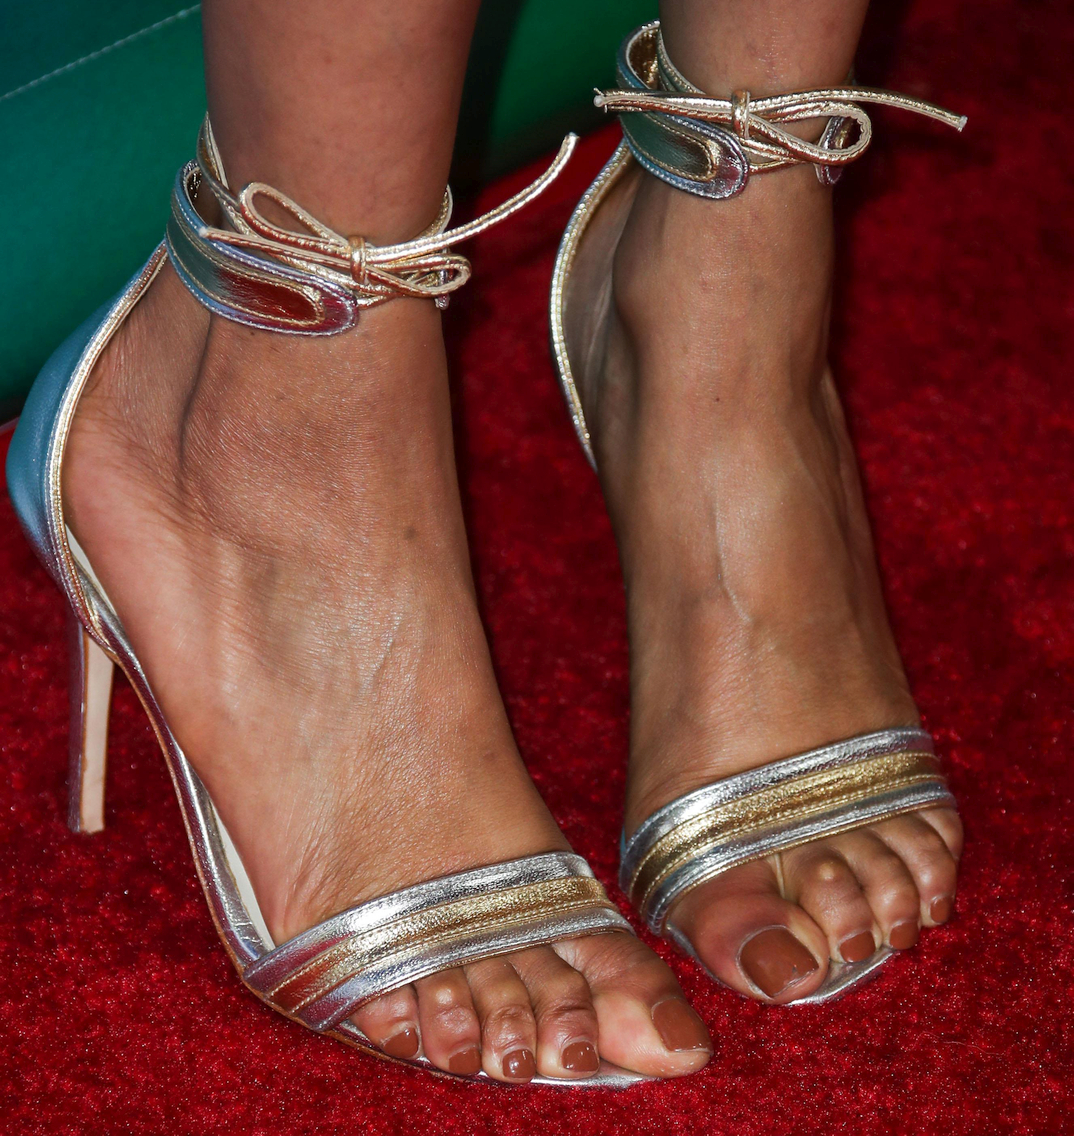 Tyra Banks showing her feet